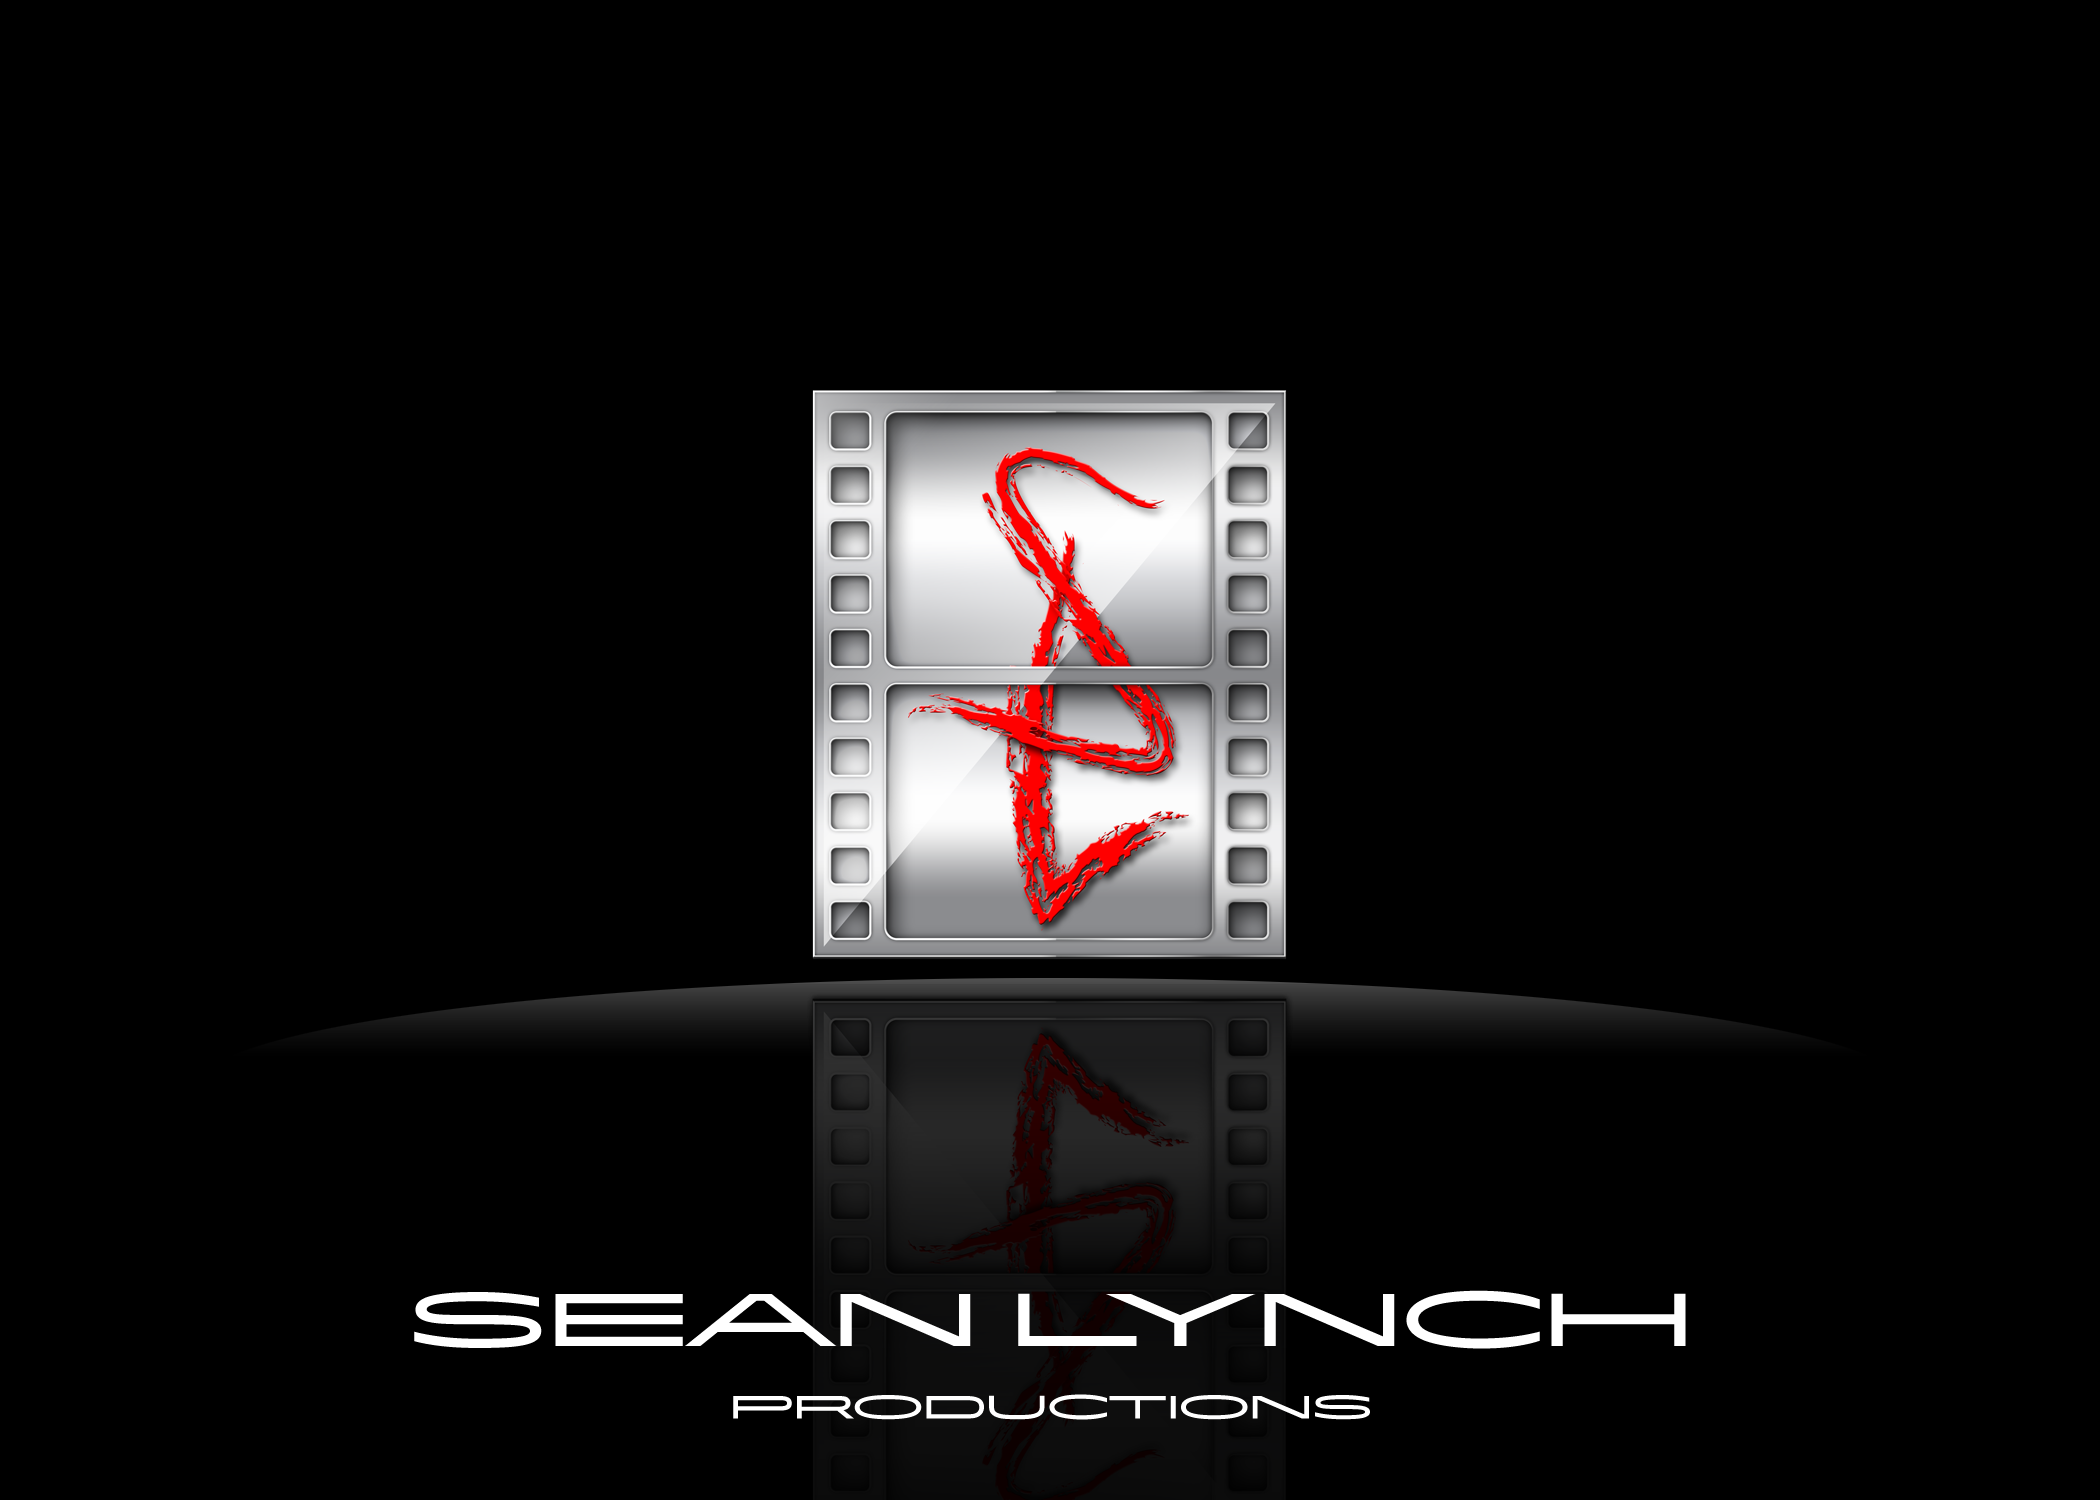 Sean Lynch Productions